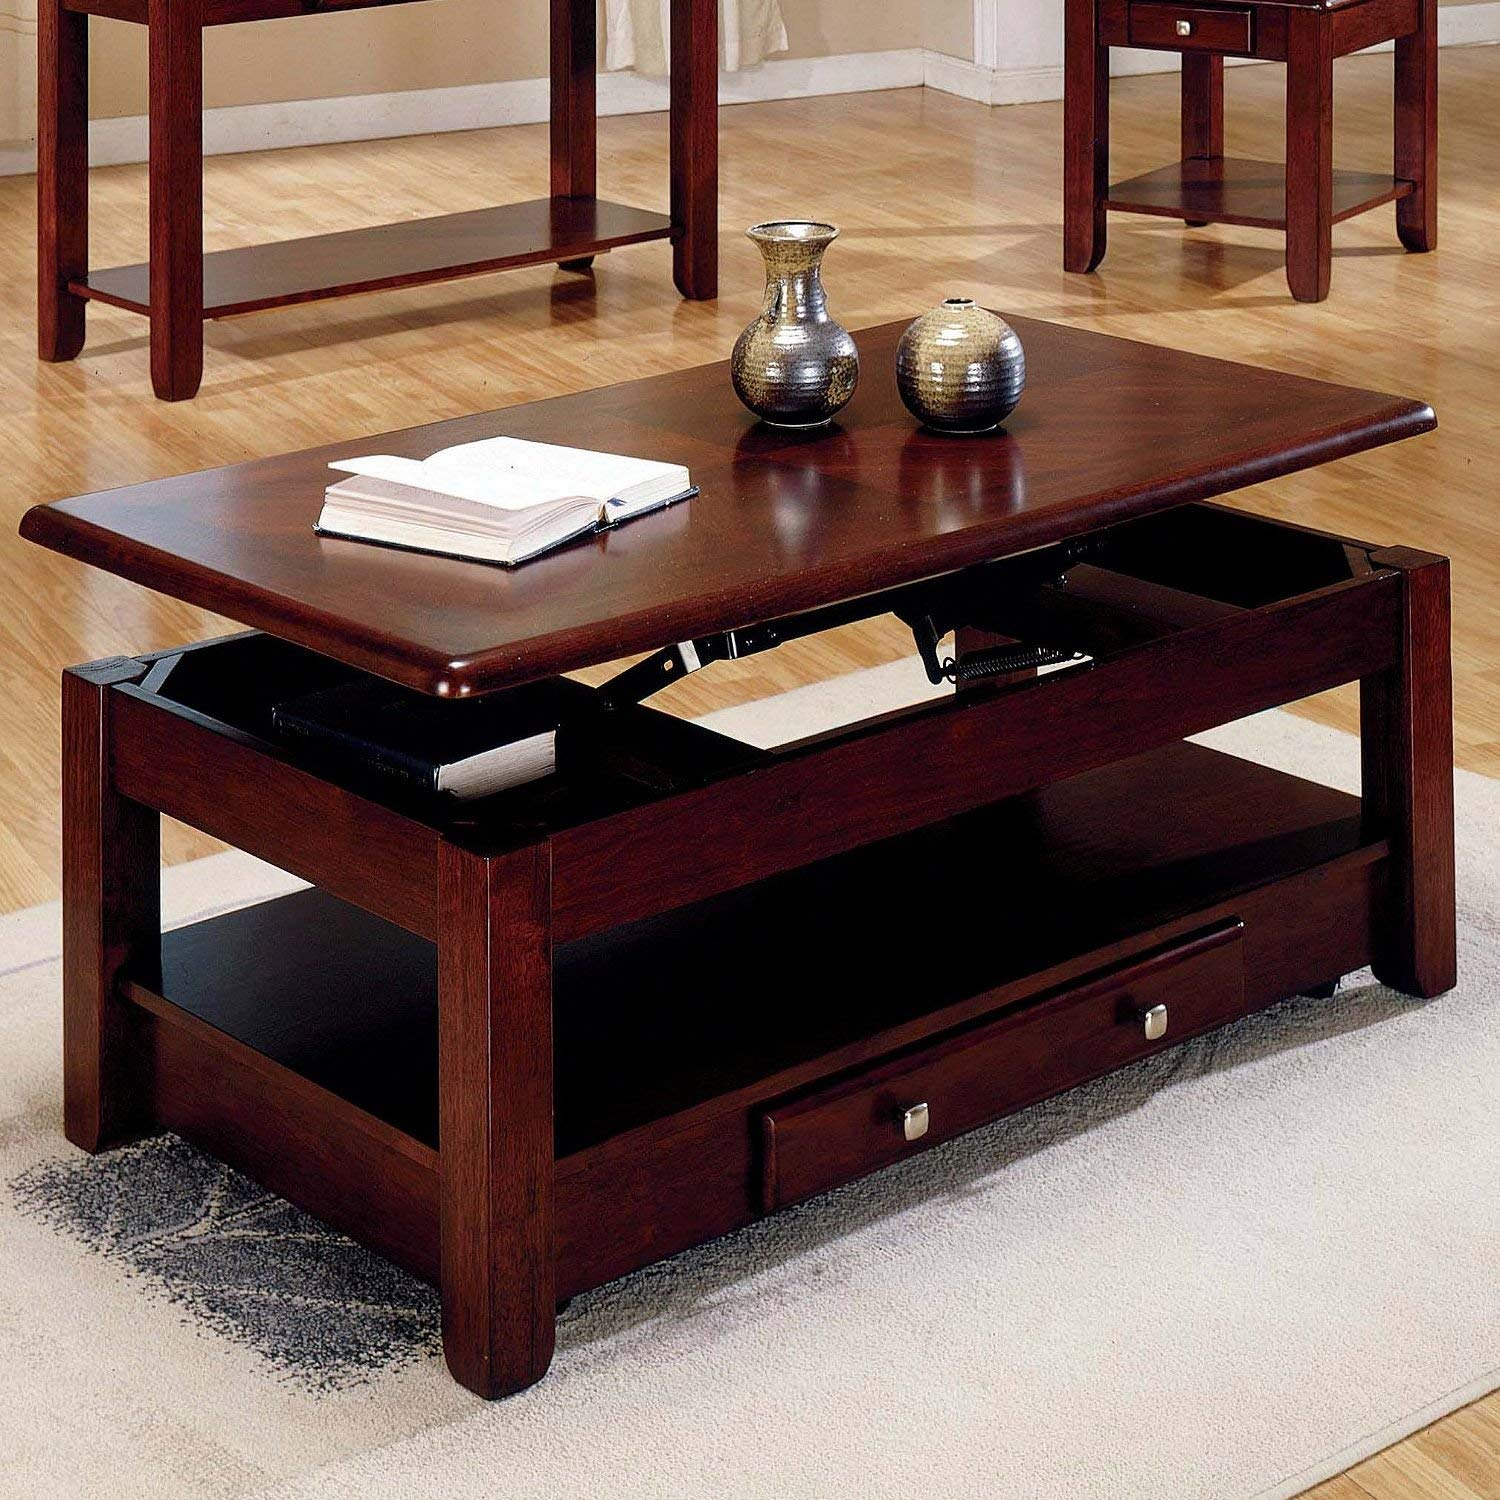 lift top coffee table cherry finish with storage wood end tables drawer drawers and bottom shelf kitchen dining broyhill yorkshire market slim lamp pet kennel furniture pine stump